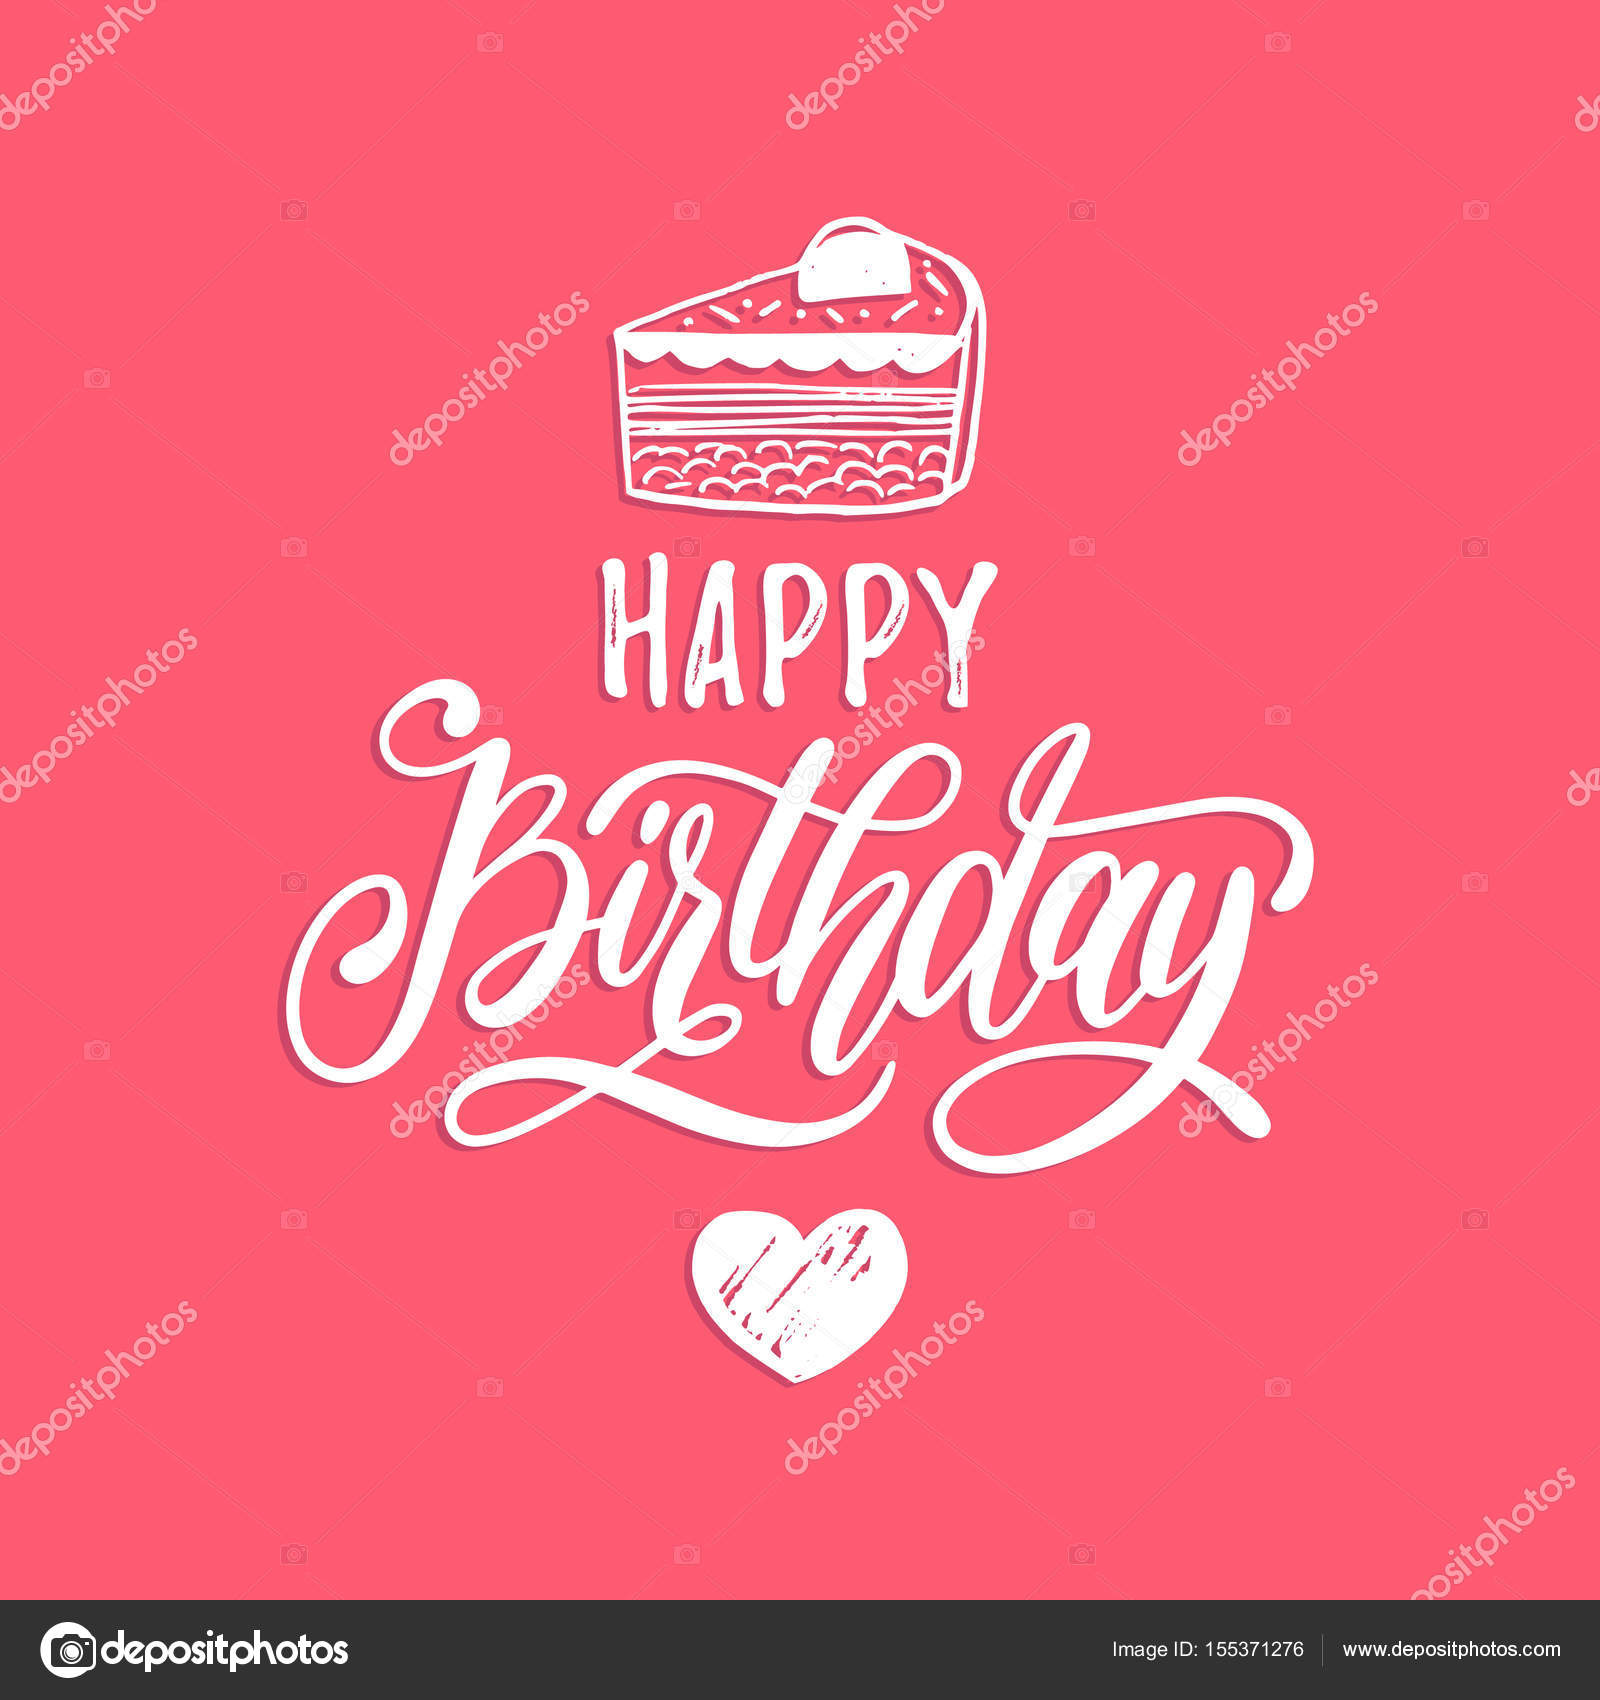 Happy birthday greeting card stock vector vladayoung 155371276 happy birthday greeting card stock vector kristyandbryce Image collections